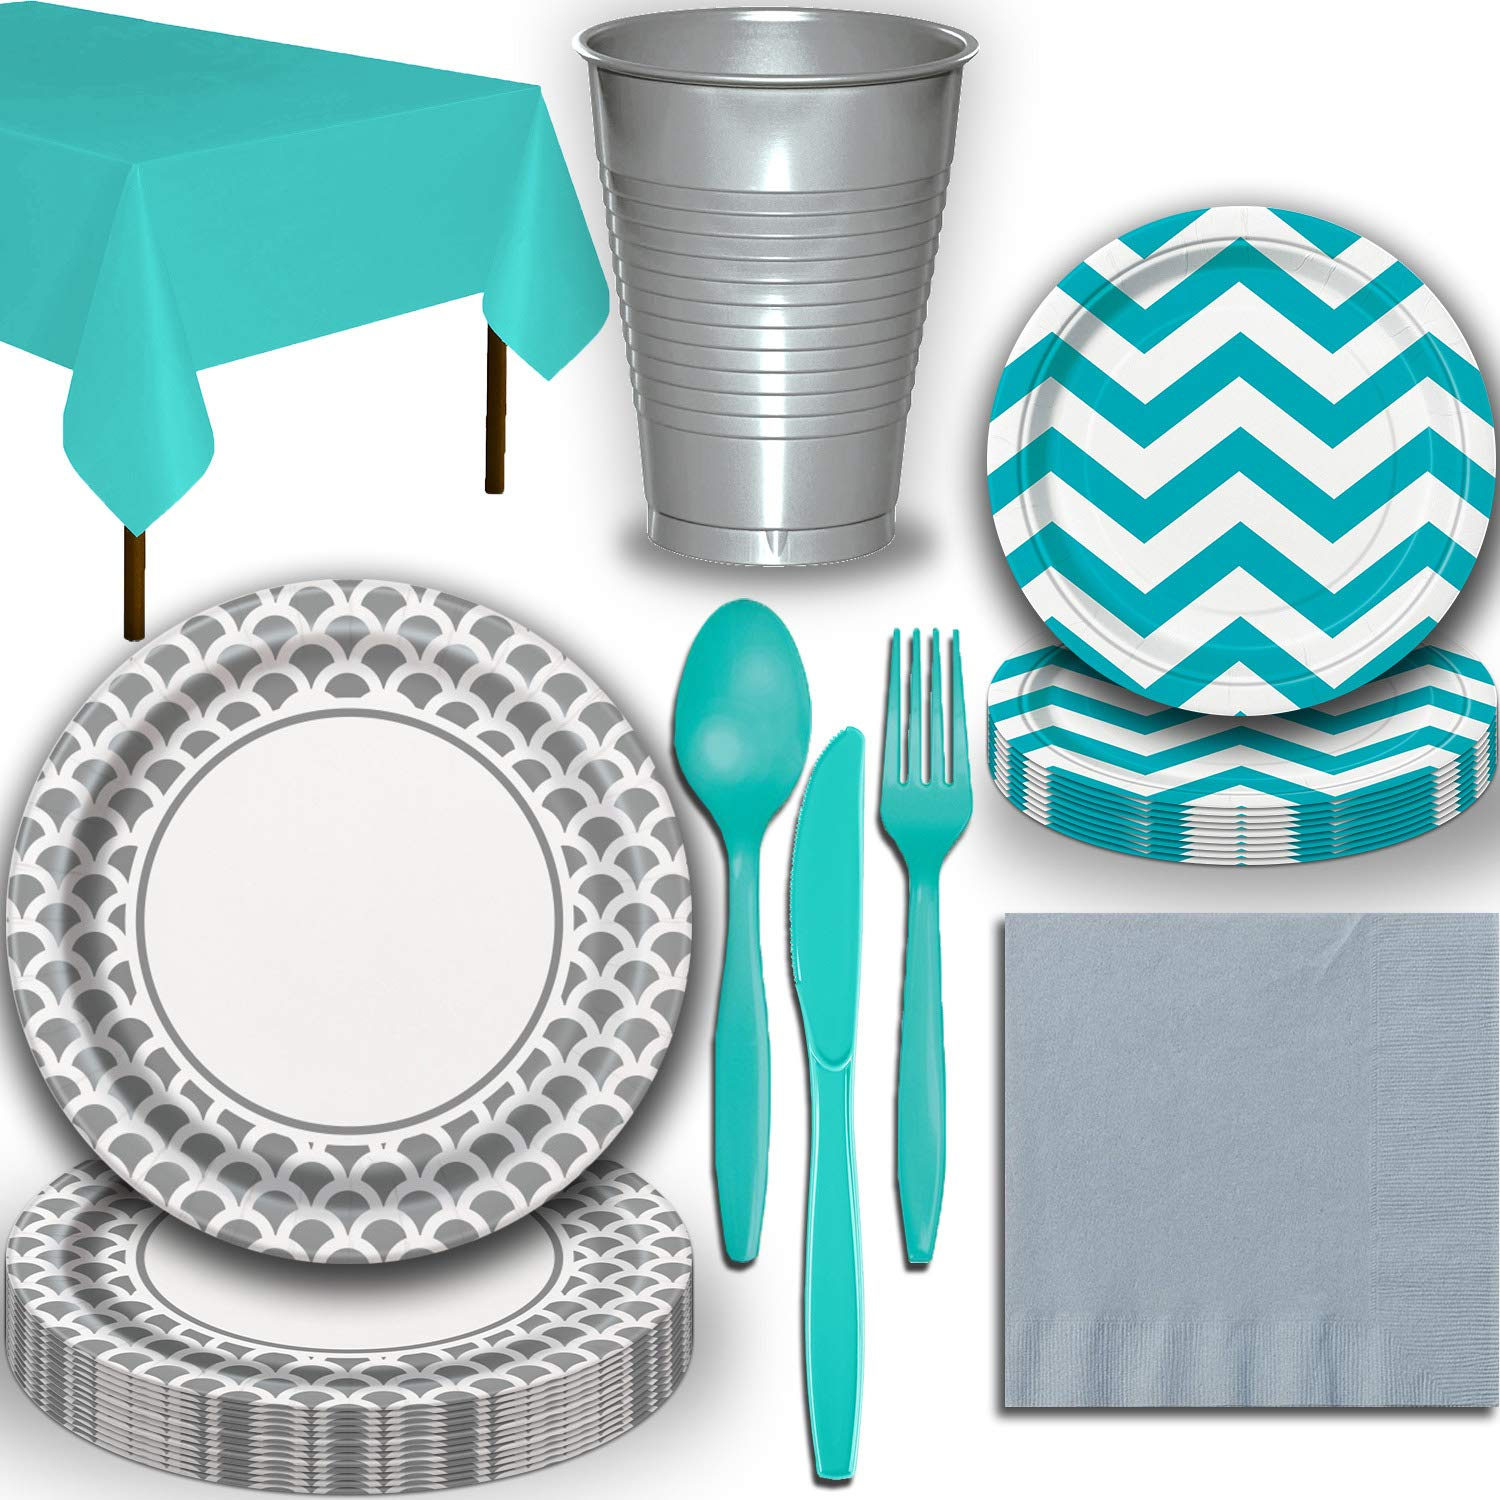 Disposable Tableware, 32 Sets - Silver and Caribbean Teal - Scallop Dinner Plates, Chevron Dessert Plates, Cups, Lunch Napkins, Cutlery, and Tablecloths: Premium Quality Party Supplies Set by HeroFiber (Image #2)